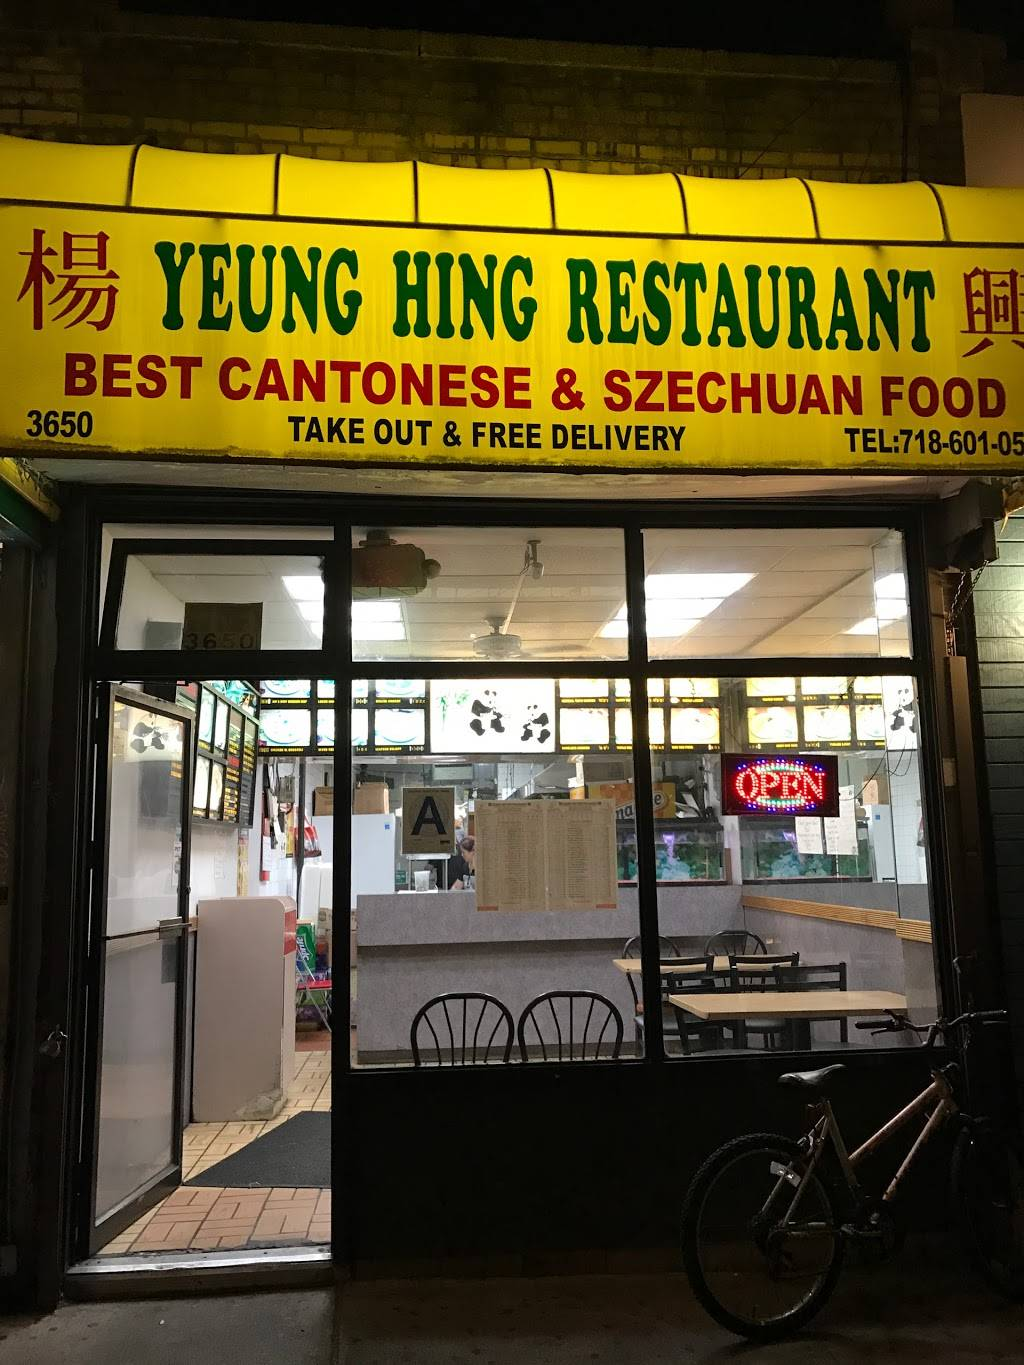 New Yeung Hing | restaurant | 3650 Bailey Ave, Bronx, NY 10463, USA | 7186010597 OR +1 718-601-0597